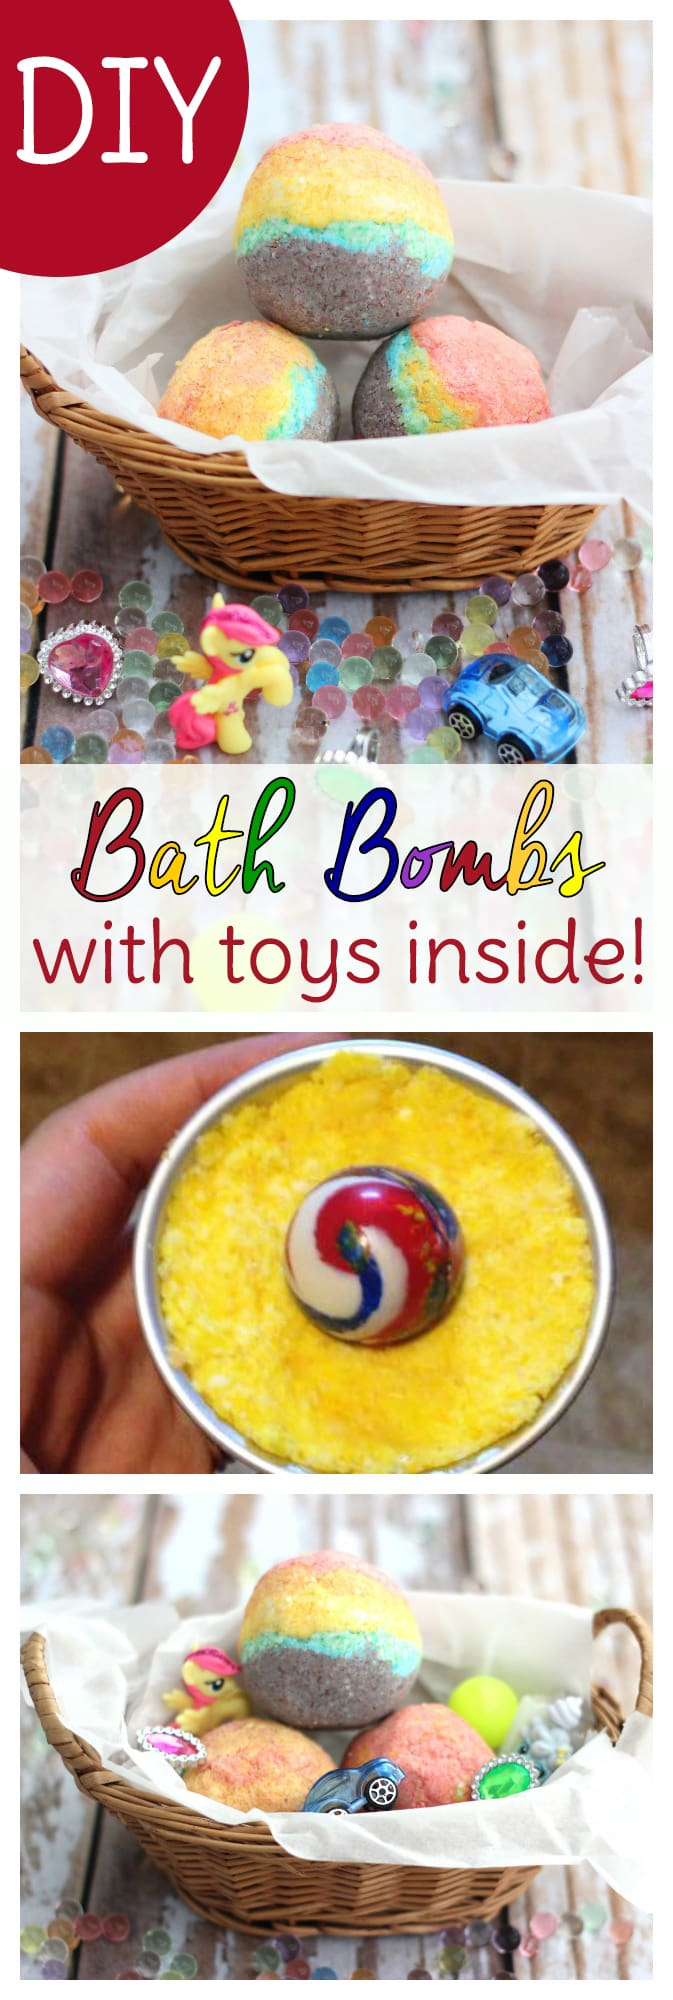 These homemade rainbow bath bombs for kids to make have toy surprises inside! Inspired by a homemade Lush bath bombs recipe, these relaxing bath bombs for kids use essential oils to help kids calm down before bedtime. These are easy homemade bath bombs kids will enjoy creating with you!